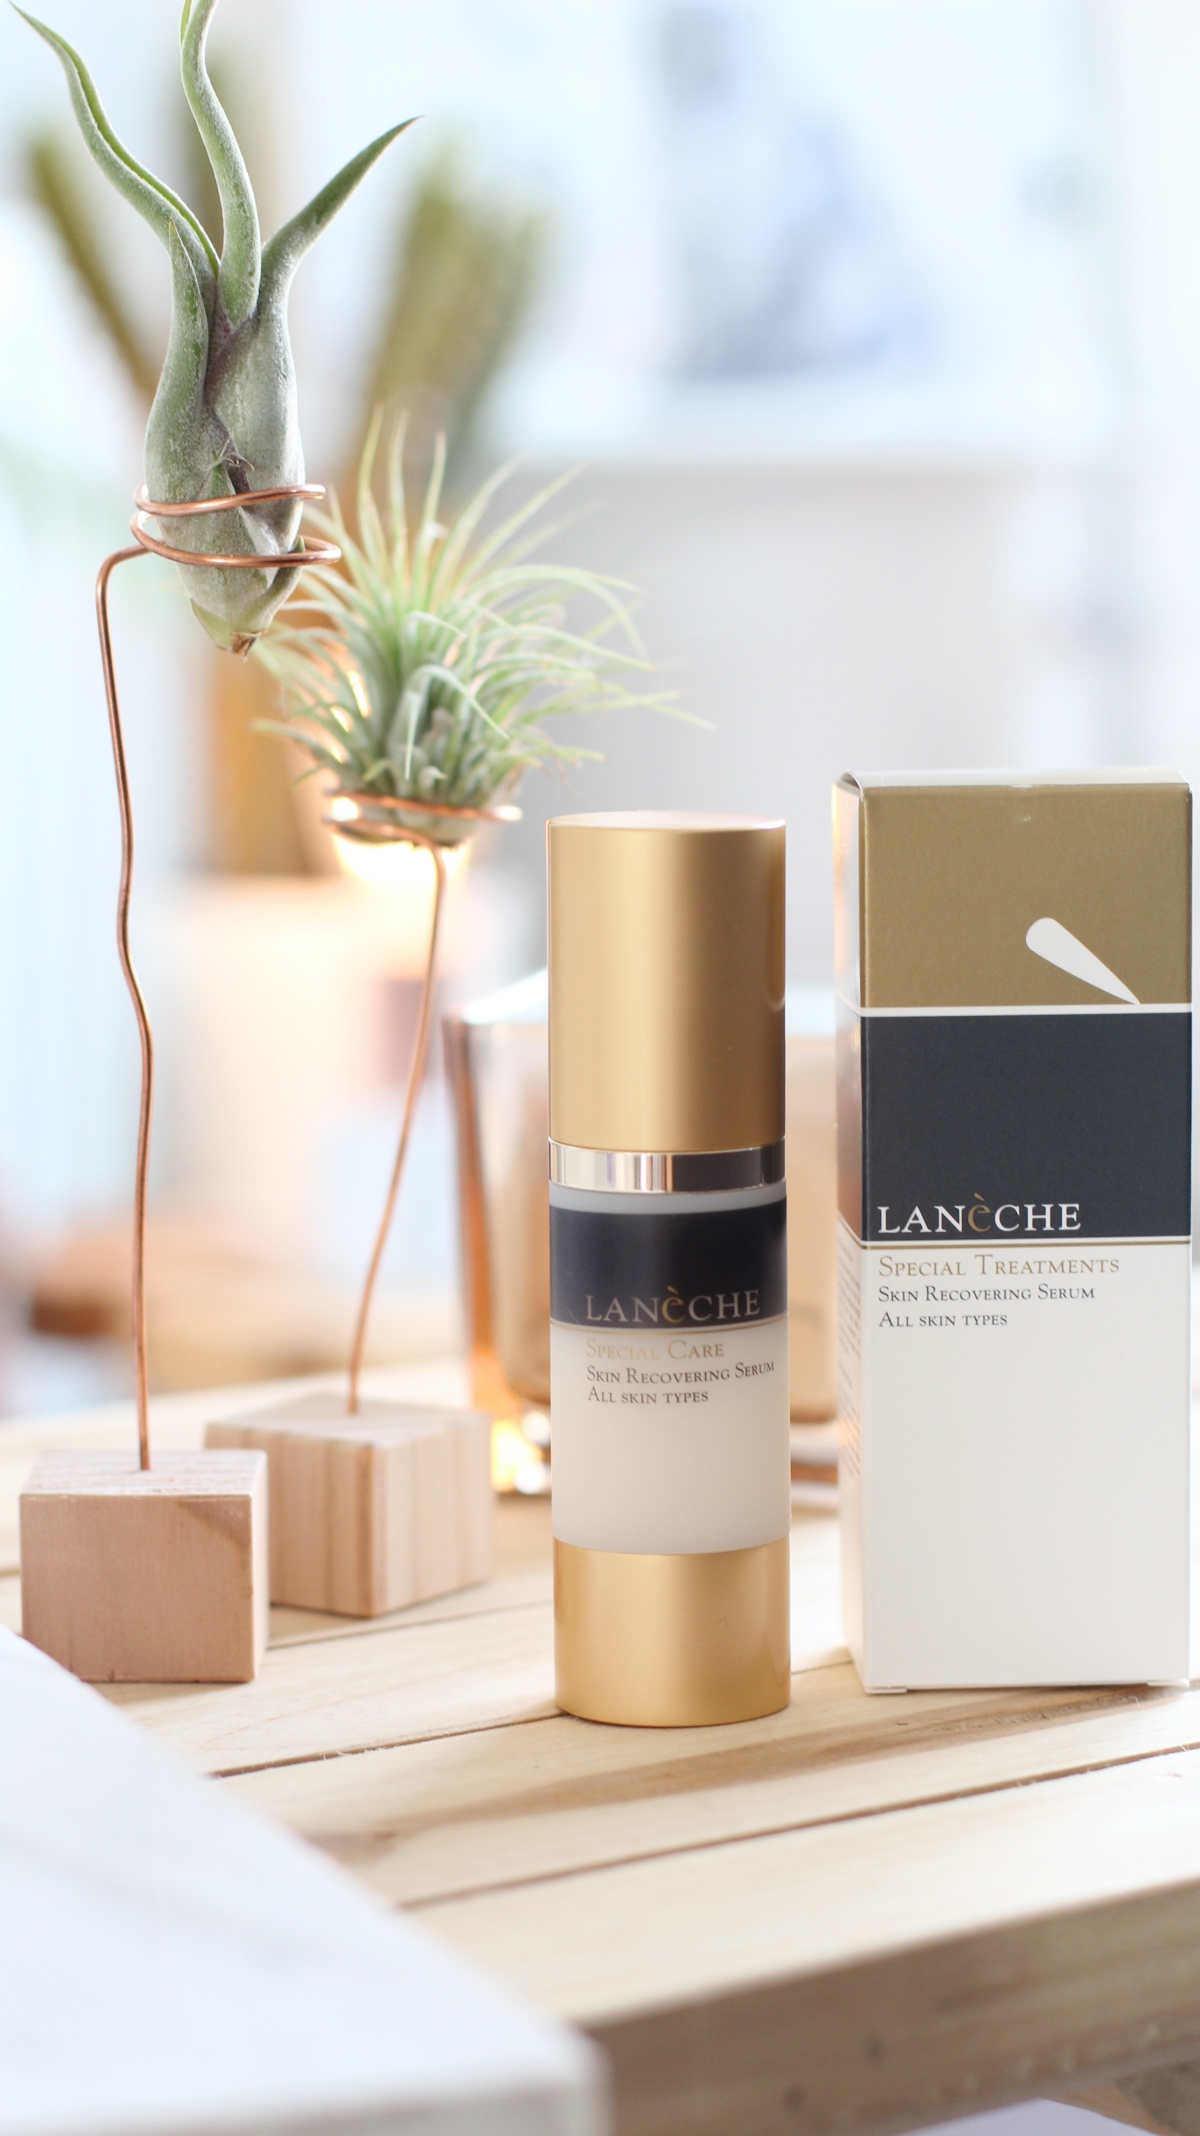 Lanèche special treatments serum & eye make-up remover